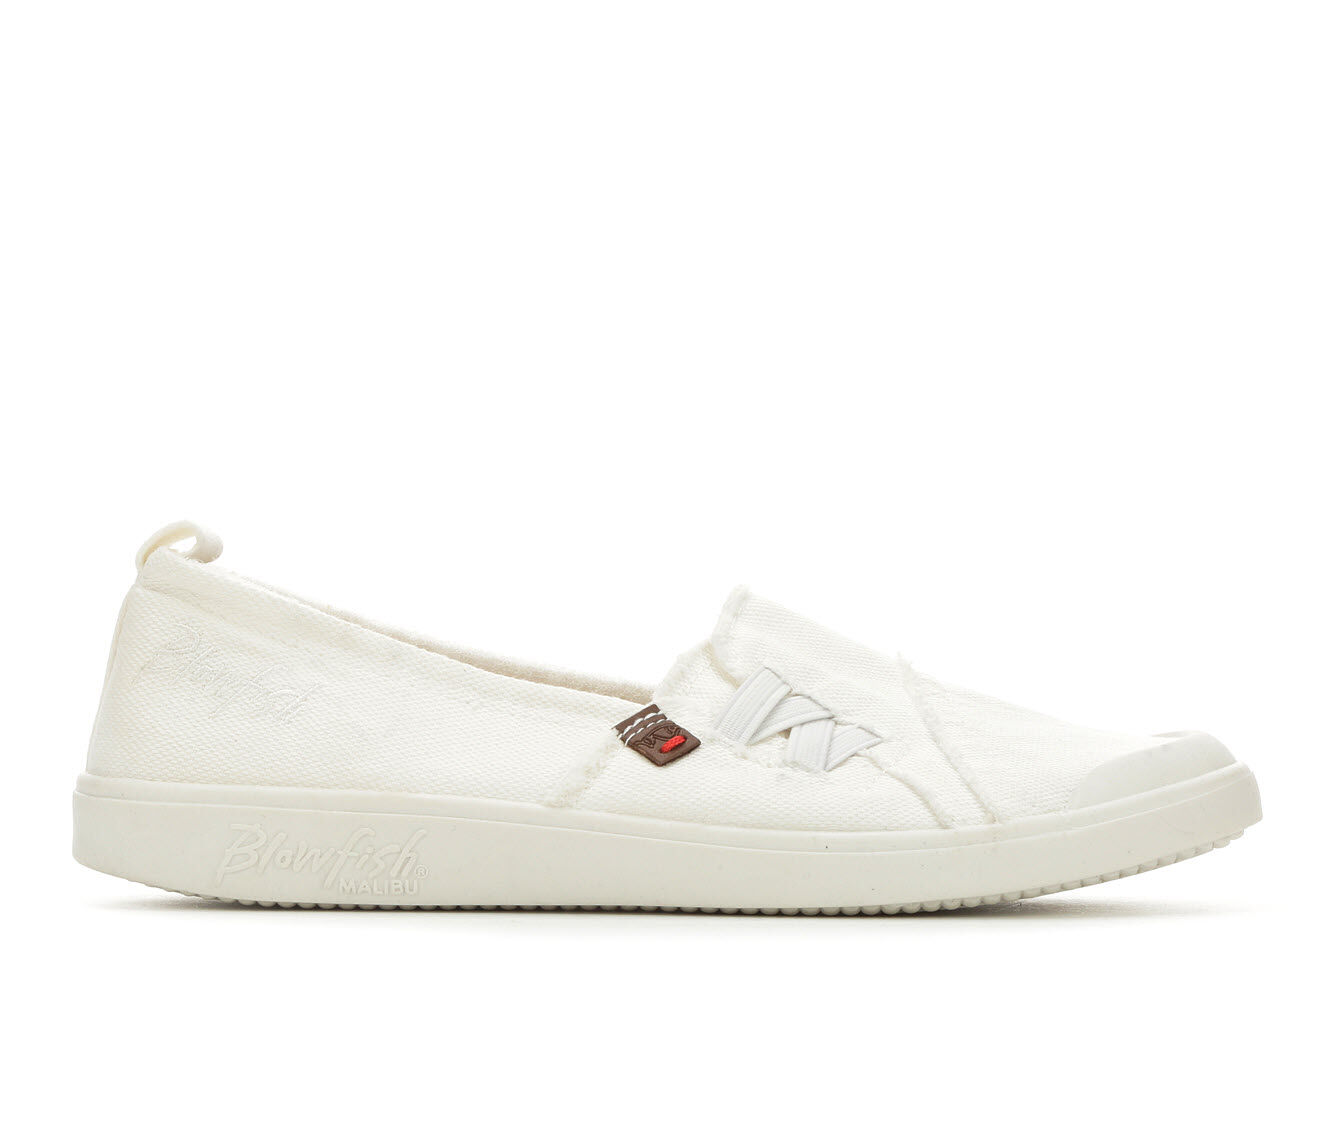 Women's Blowfish Malibu Venus Sneakers White